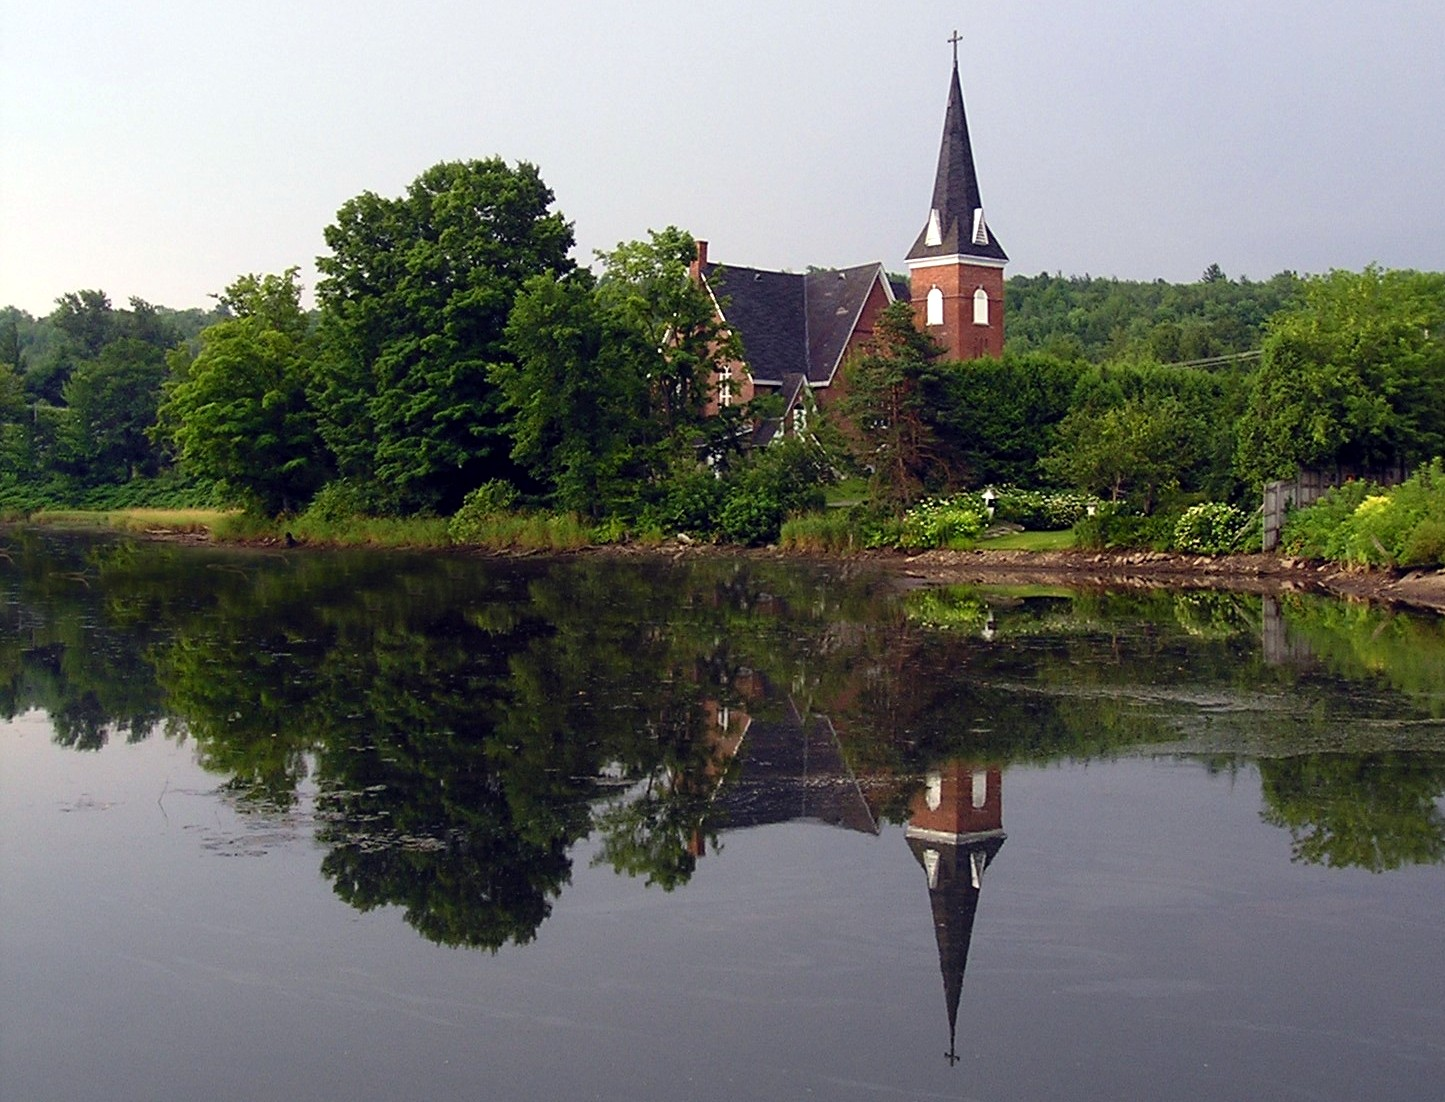 Image of Rural Quebec